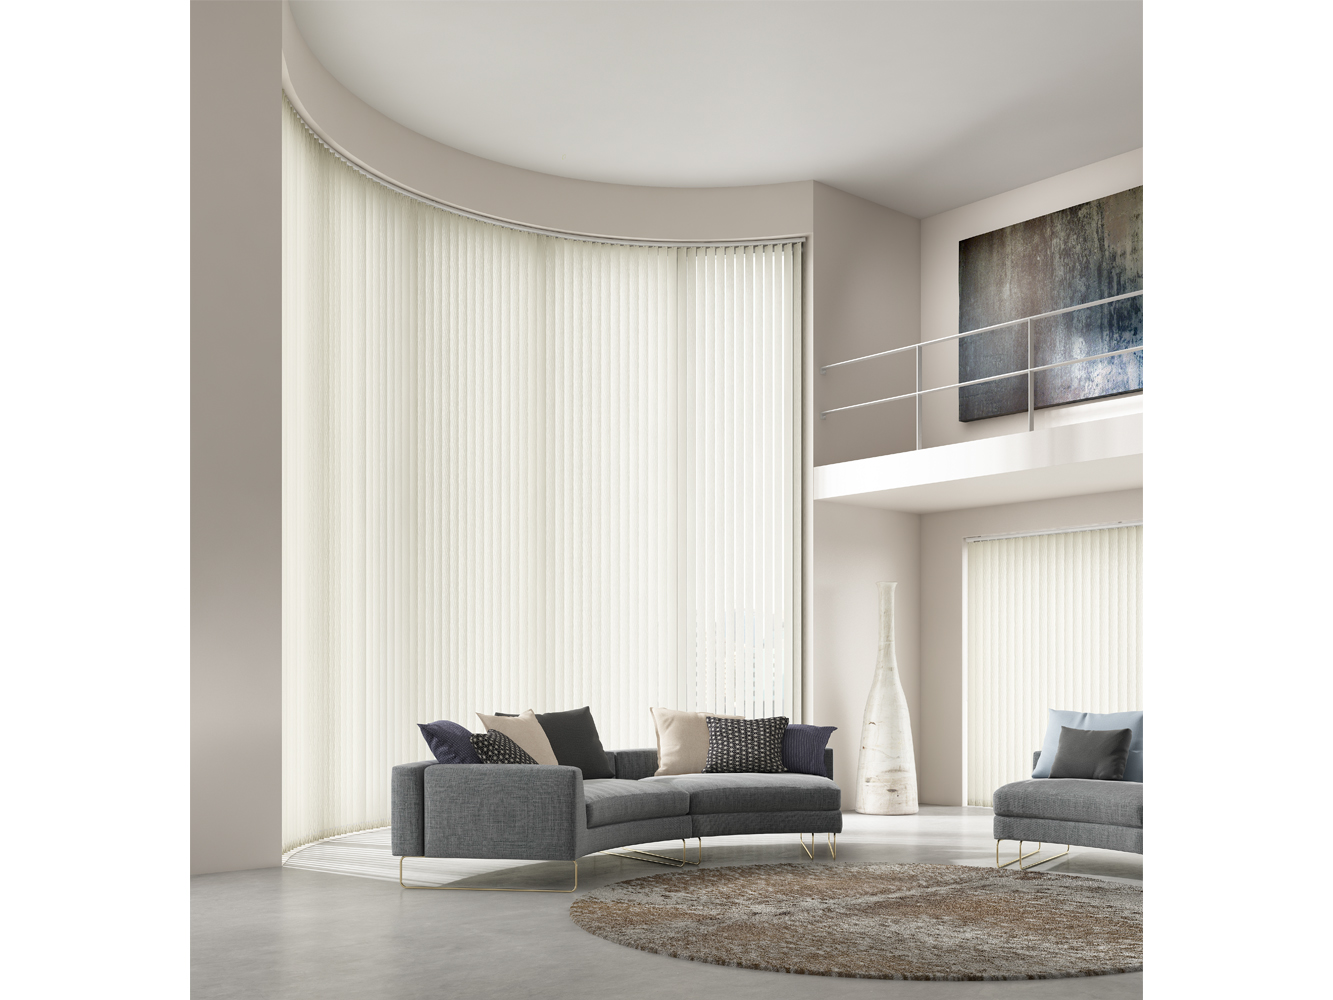 pix-us-cg-white-blinds